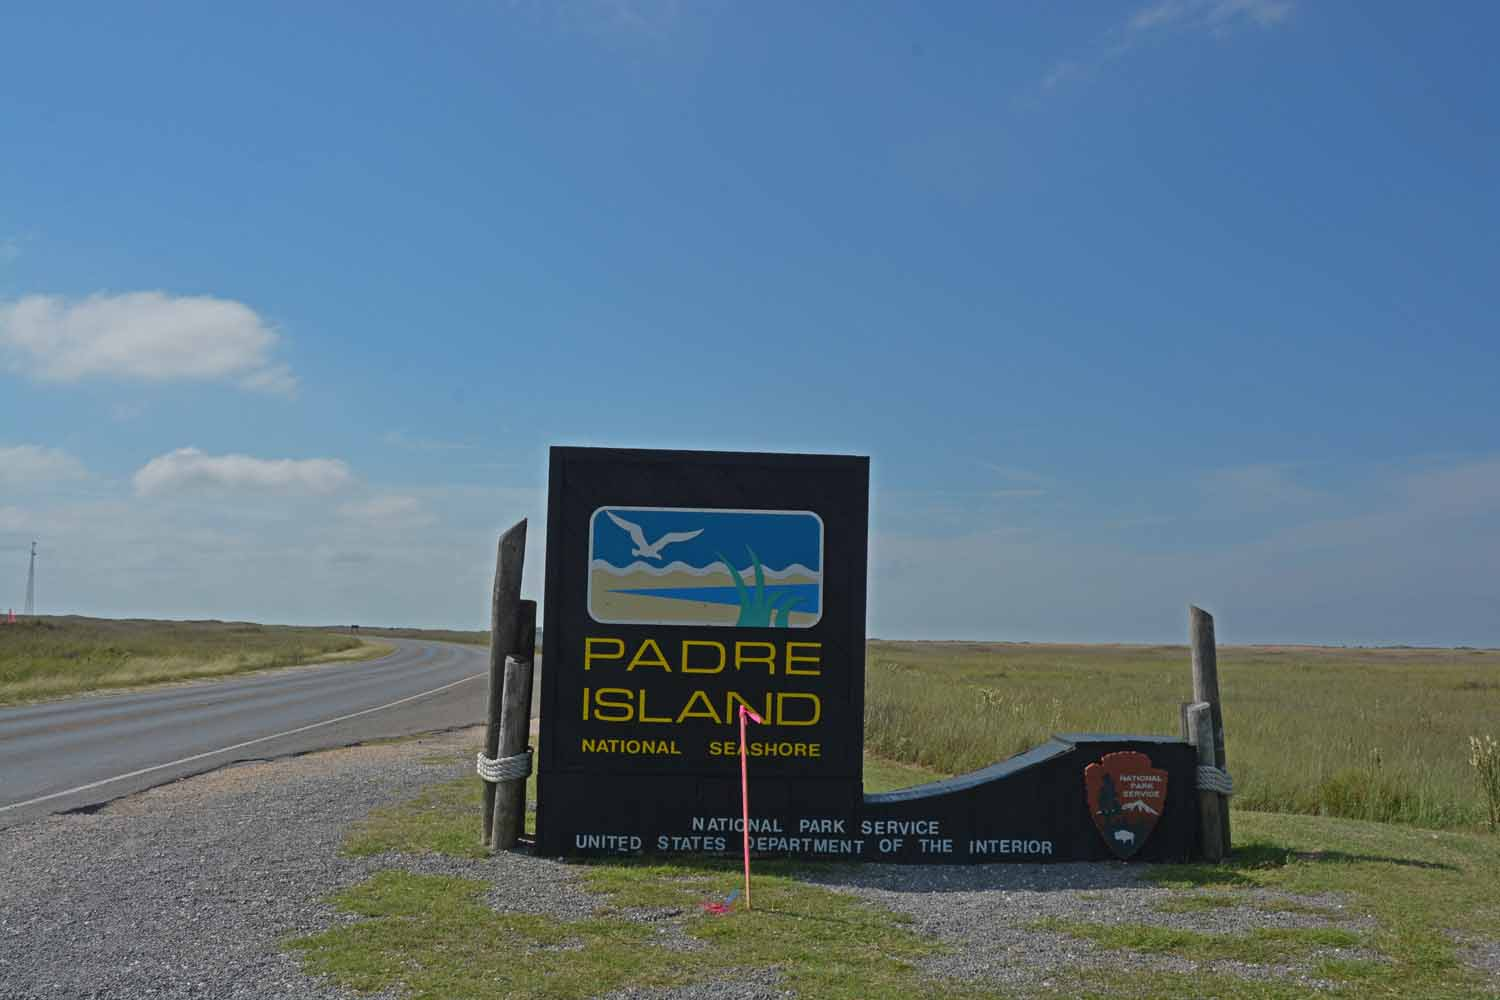 Padre Island a place we truly enjoy...